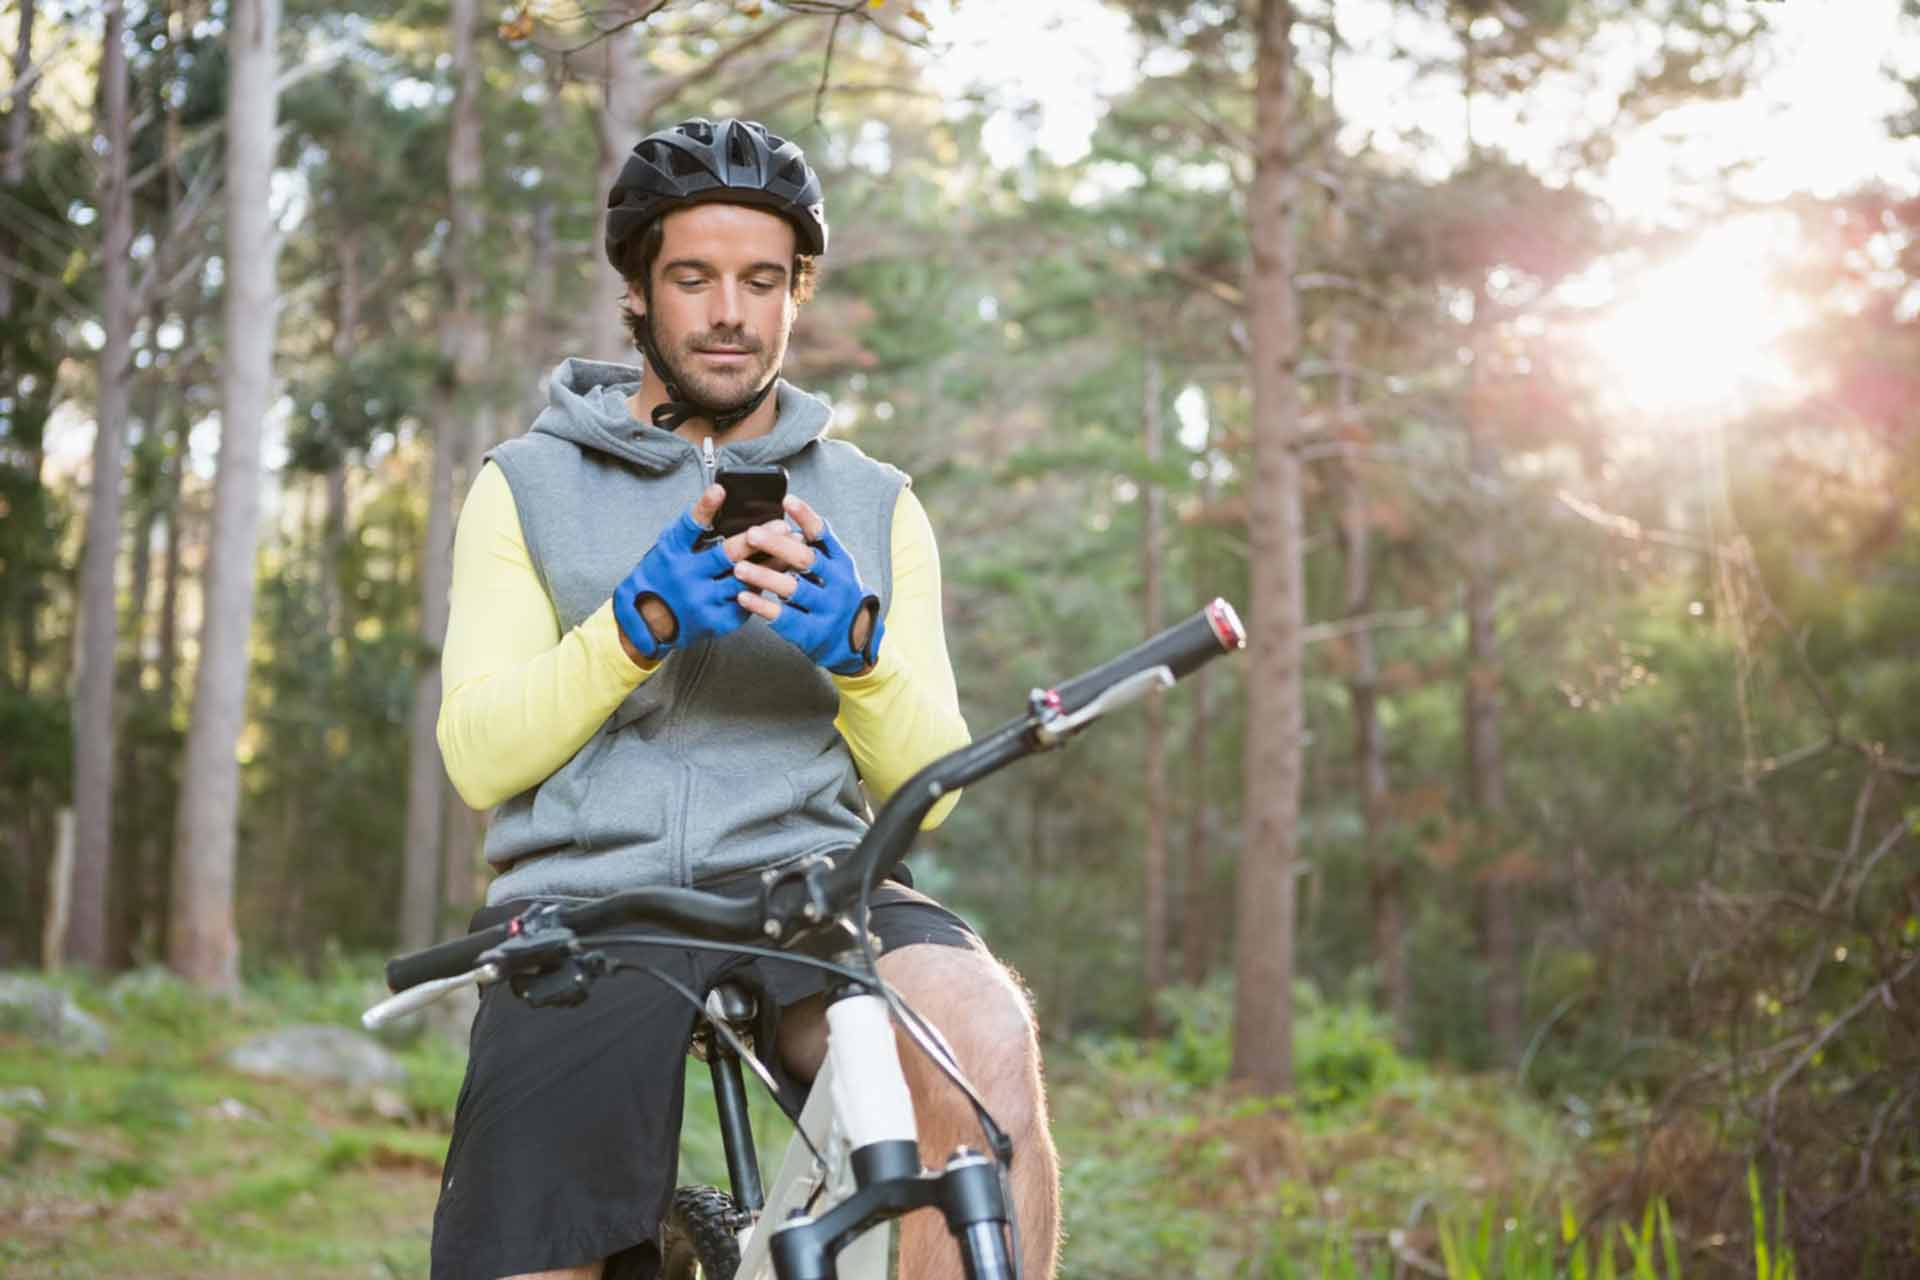 background, sign contract, adventure, bicycle, man